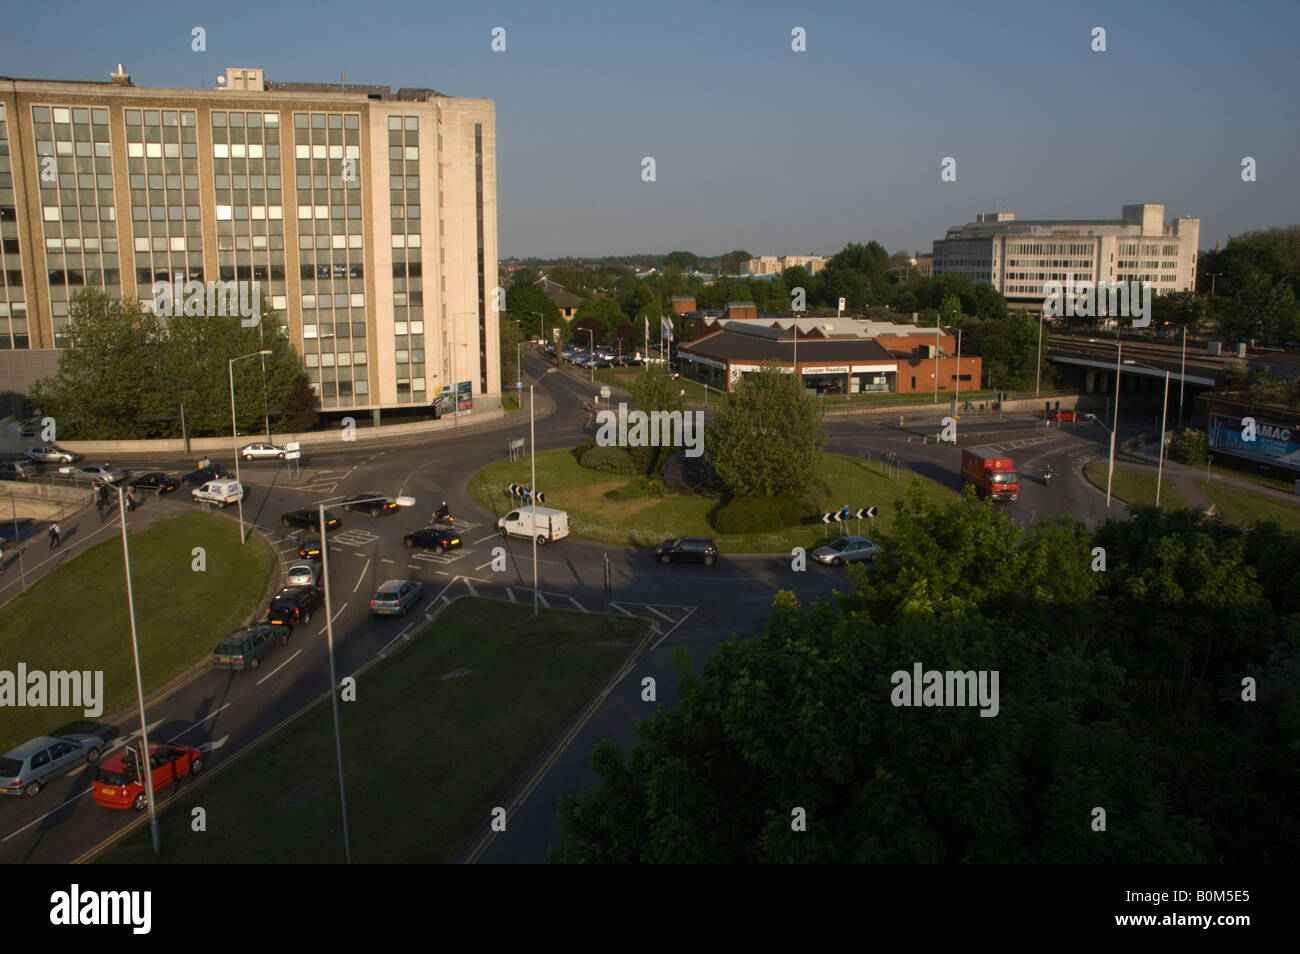 Roundabout on the northern section of the IDR (Inner Distribution Road), Reading, Berkshire, UK, showing London - Stock Image